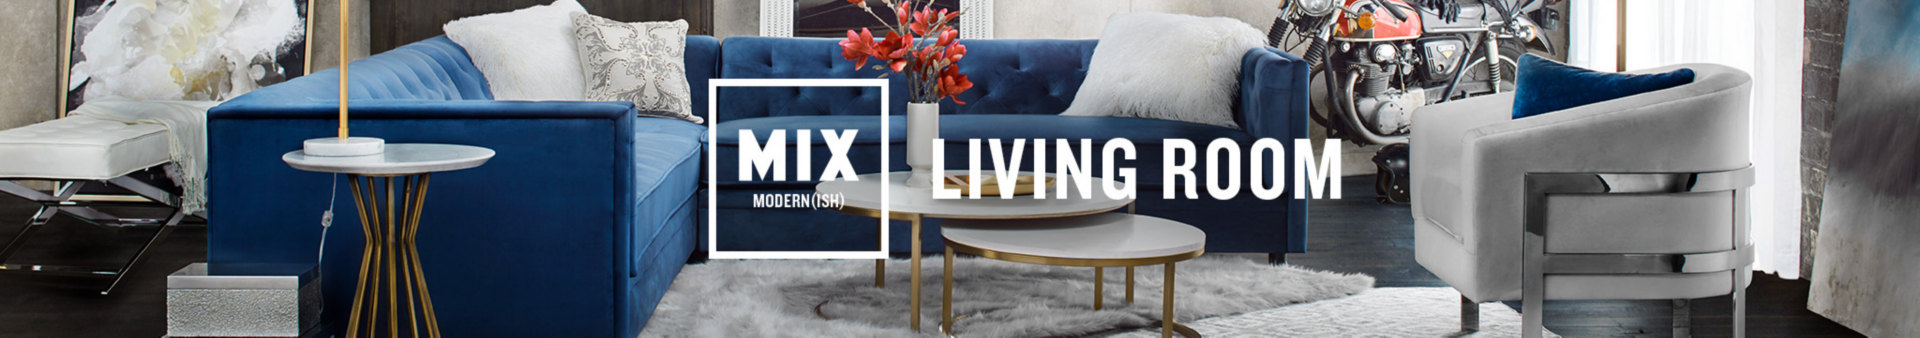 Modern(ish) Living Room Furniture | Value City Furniture and ...